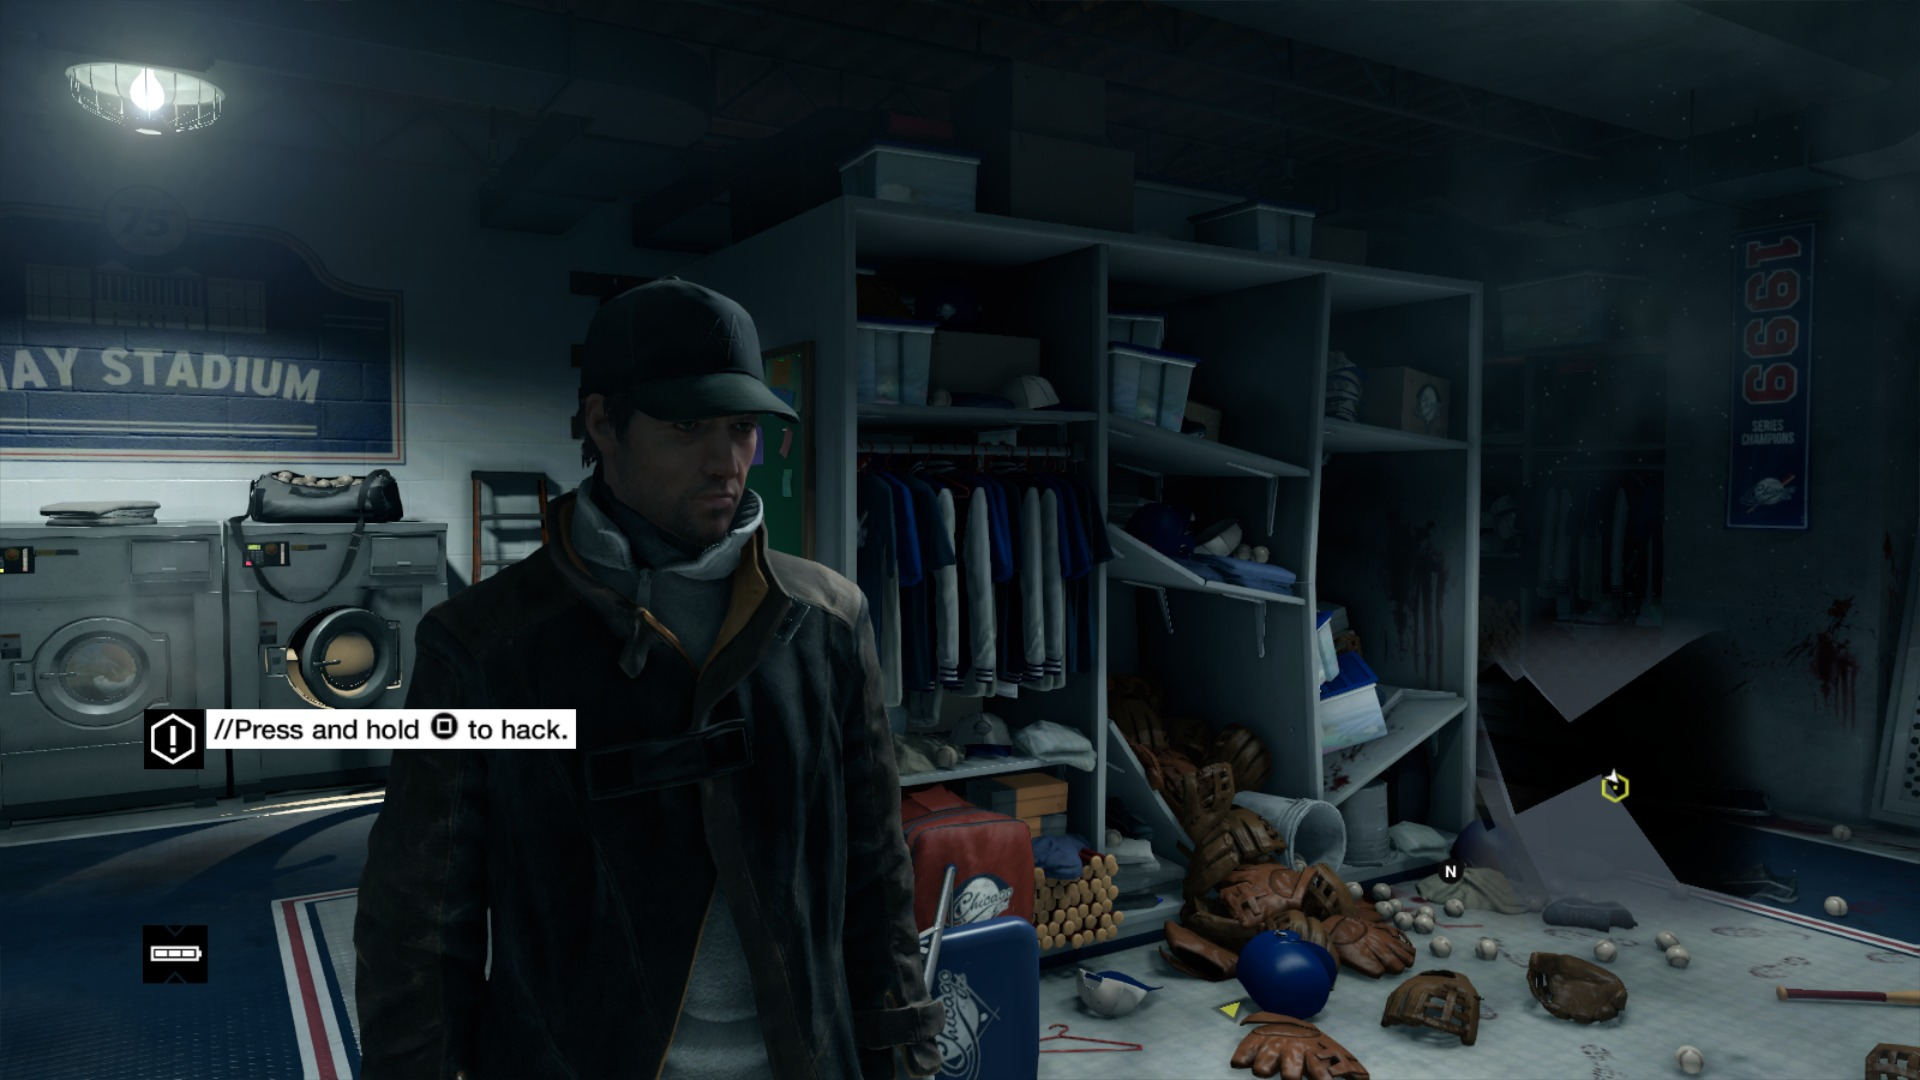 WATCH_DOGS™_20140527181336